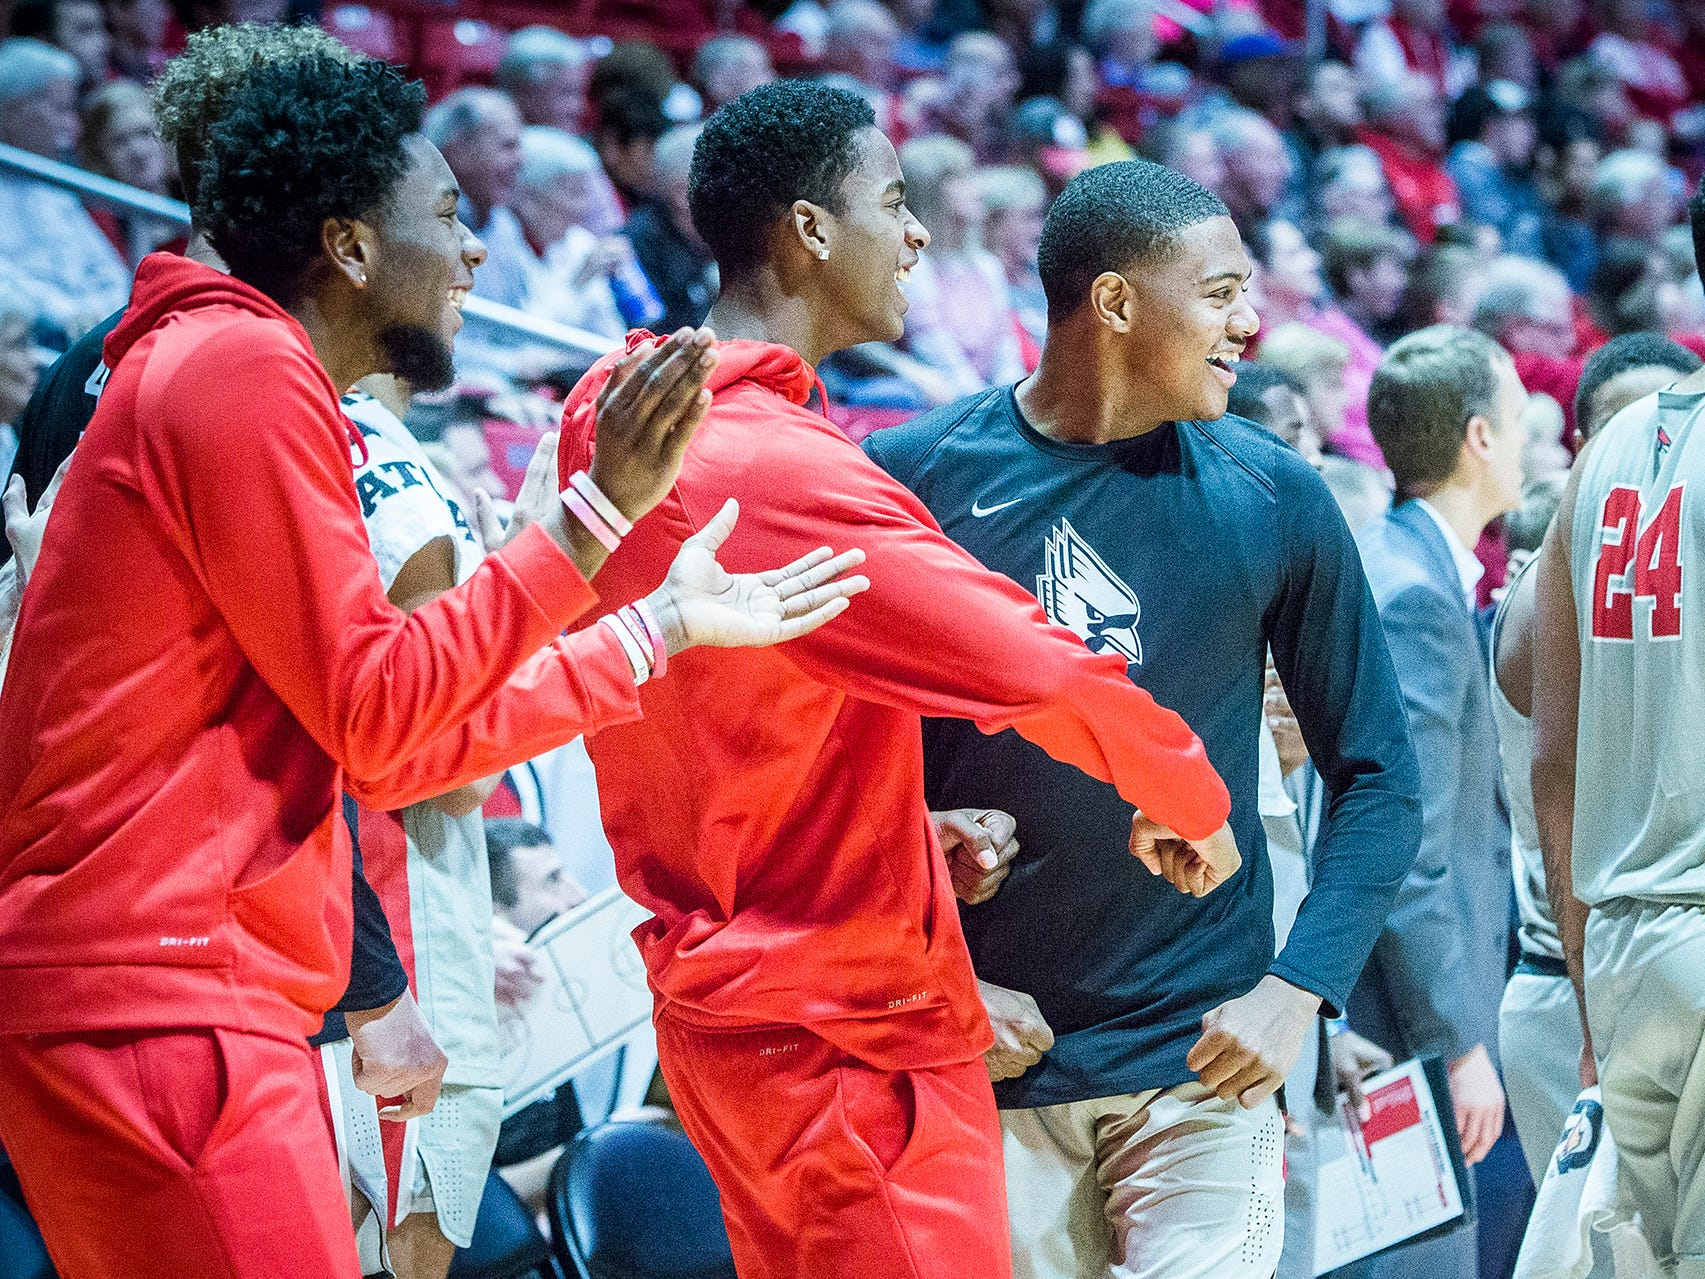 Ball State players Kani Acree (left), Miryne Thomas (center) and Jarron Coleman cheer on their teammates during a game against Evansville at Worthen Arena Saturday, Nov. 24, 2018.